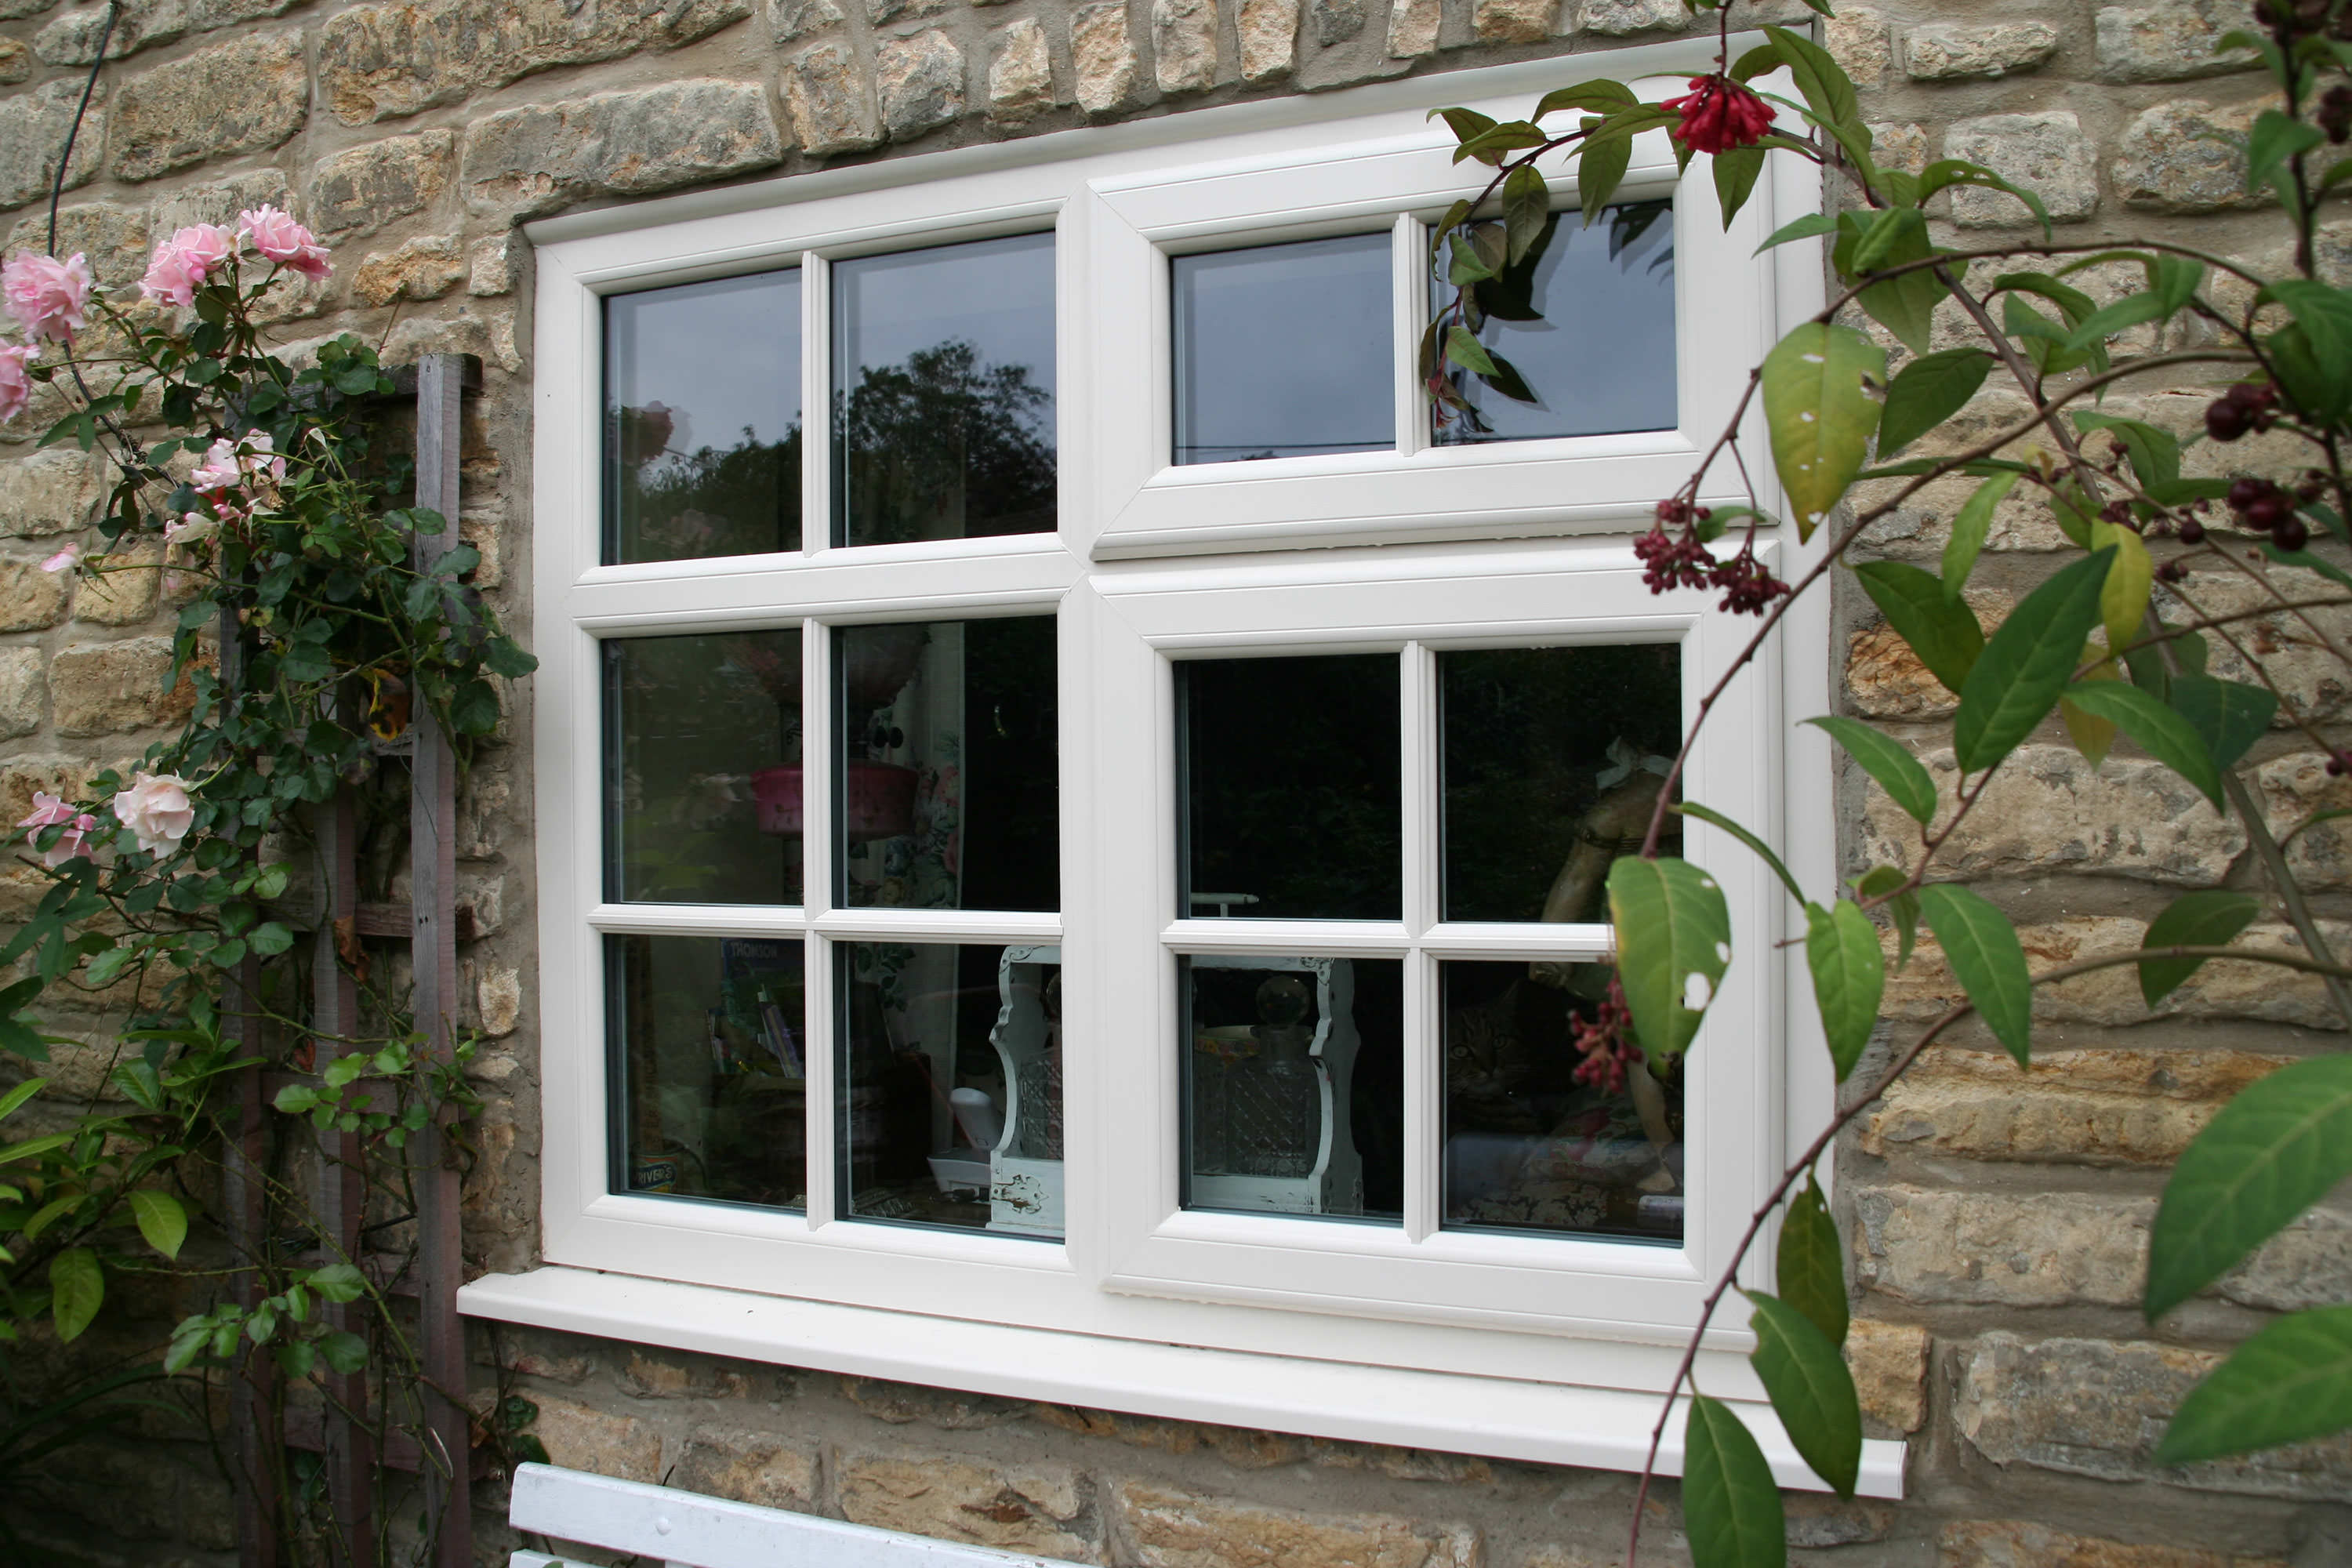 Deceuninck 2800 Casement Windows